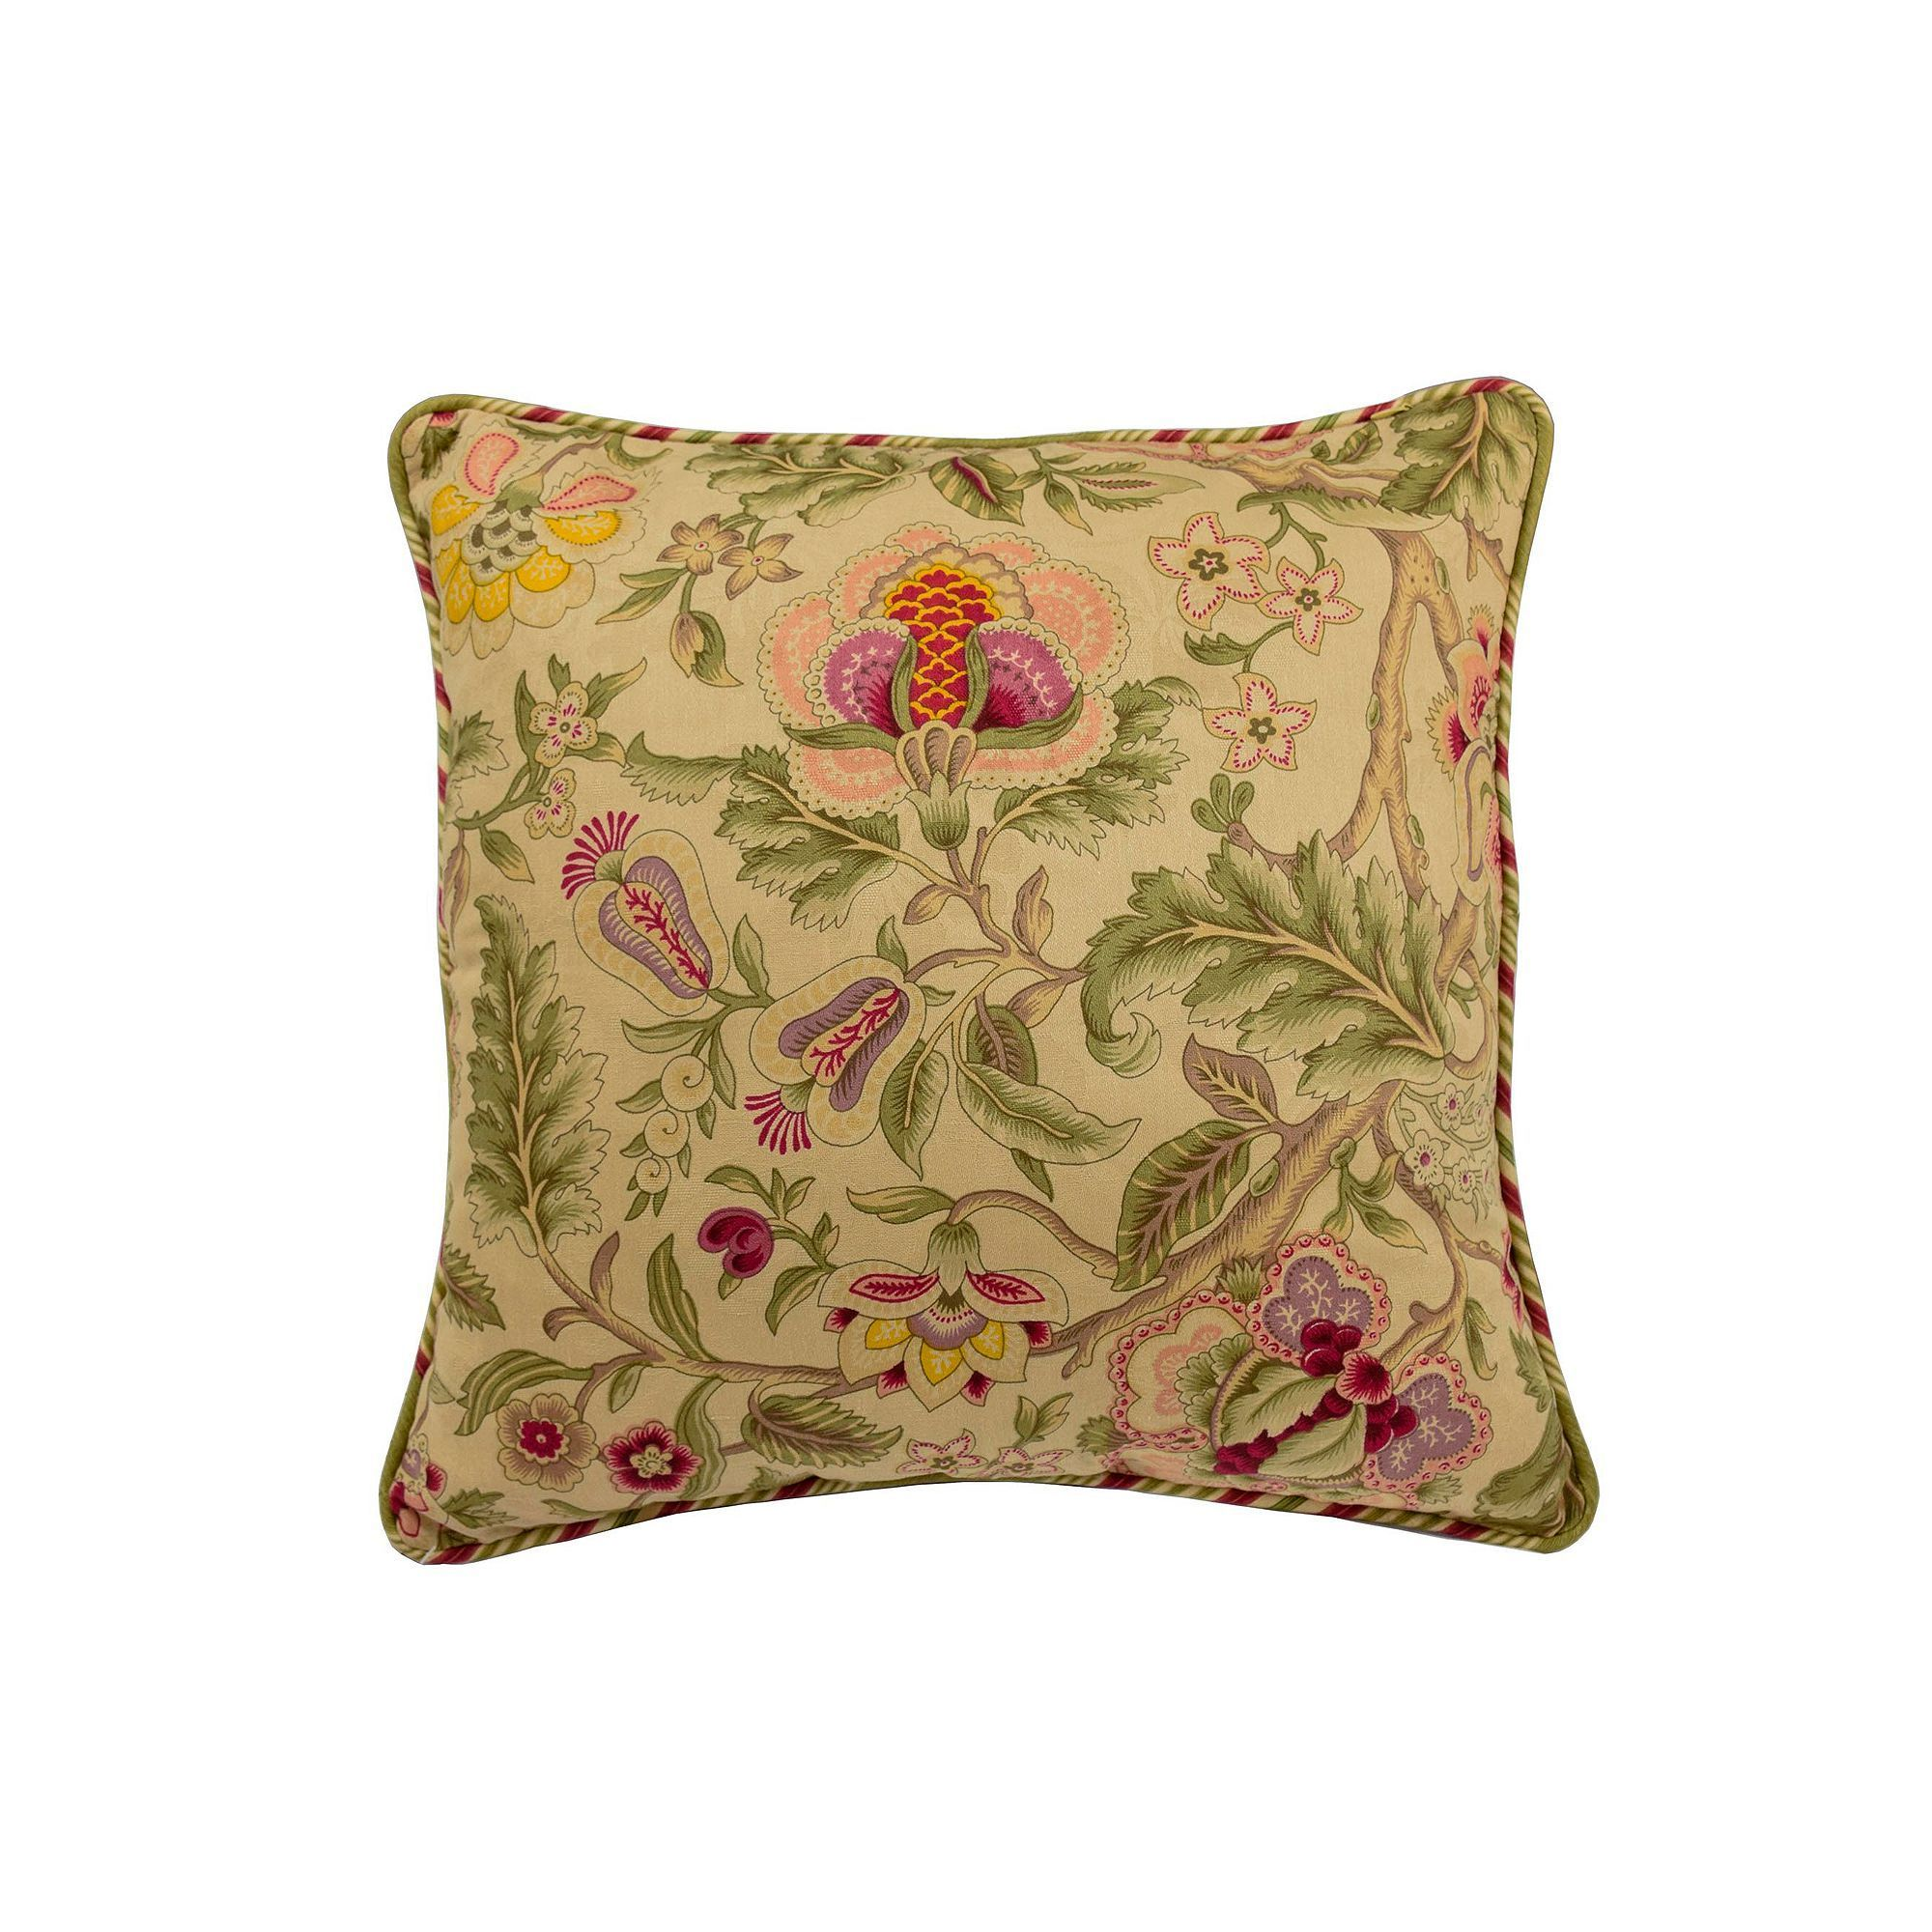 Blue Floral Vintage Waverly Decorative Pillow Cover Throw Pillow Toss Pillow Both Sides All Sizes Available